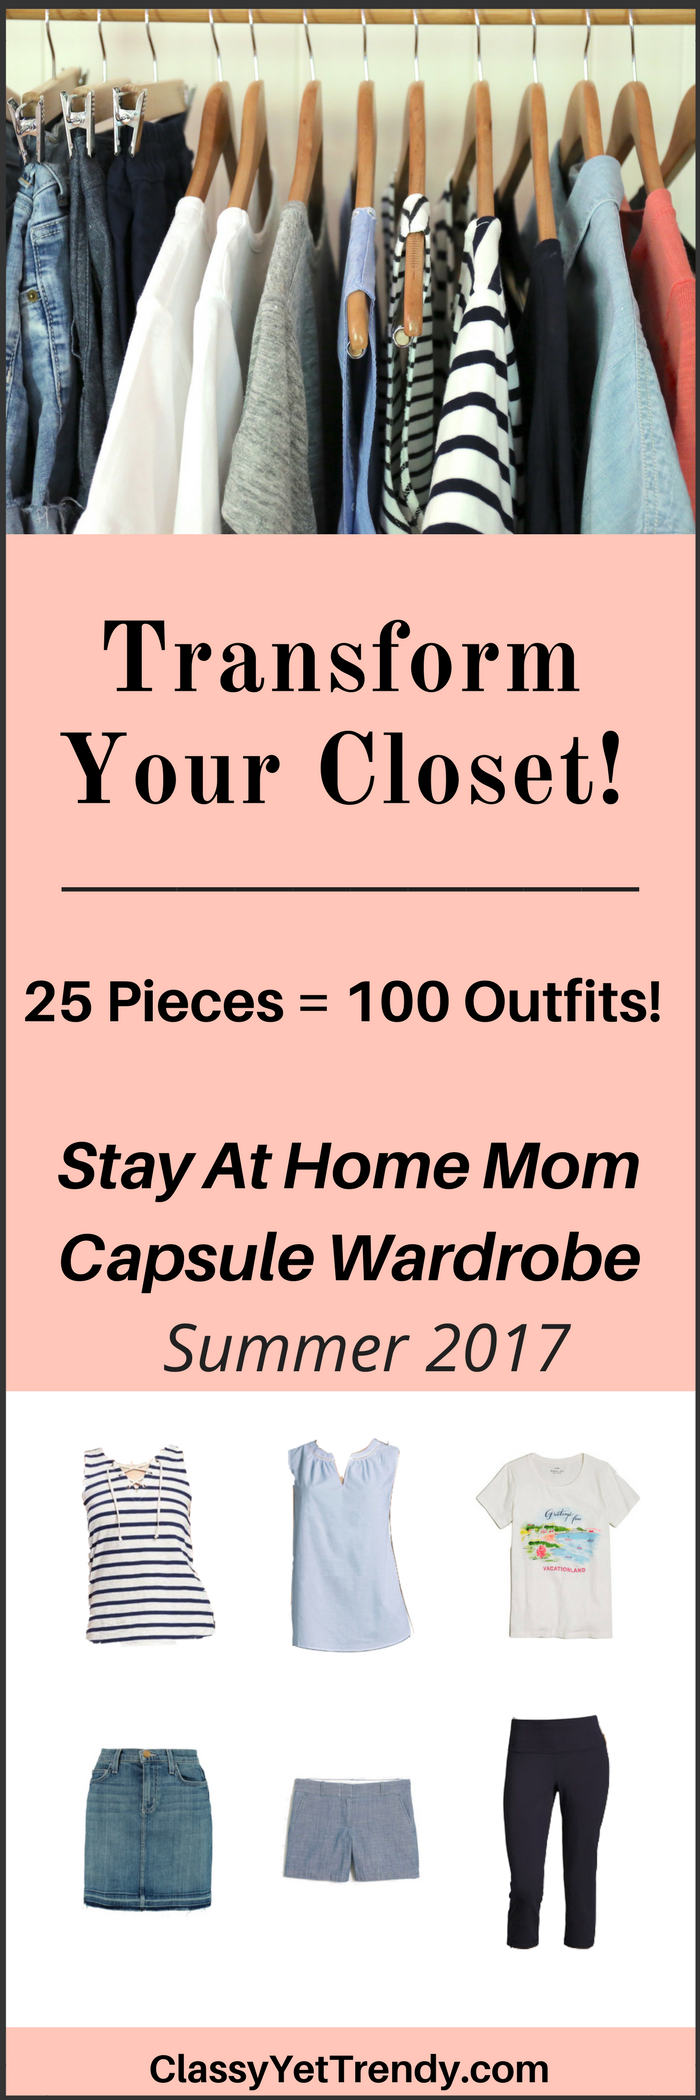 The Stay At Home Mom Summer 2017 Capsule Wardrobe e-book